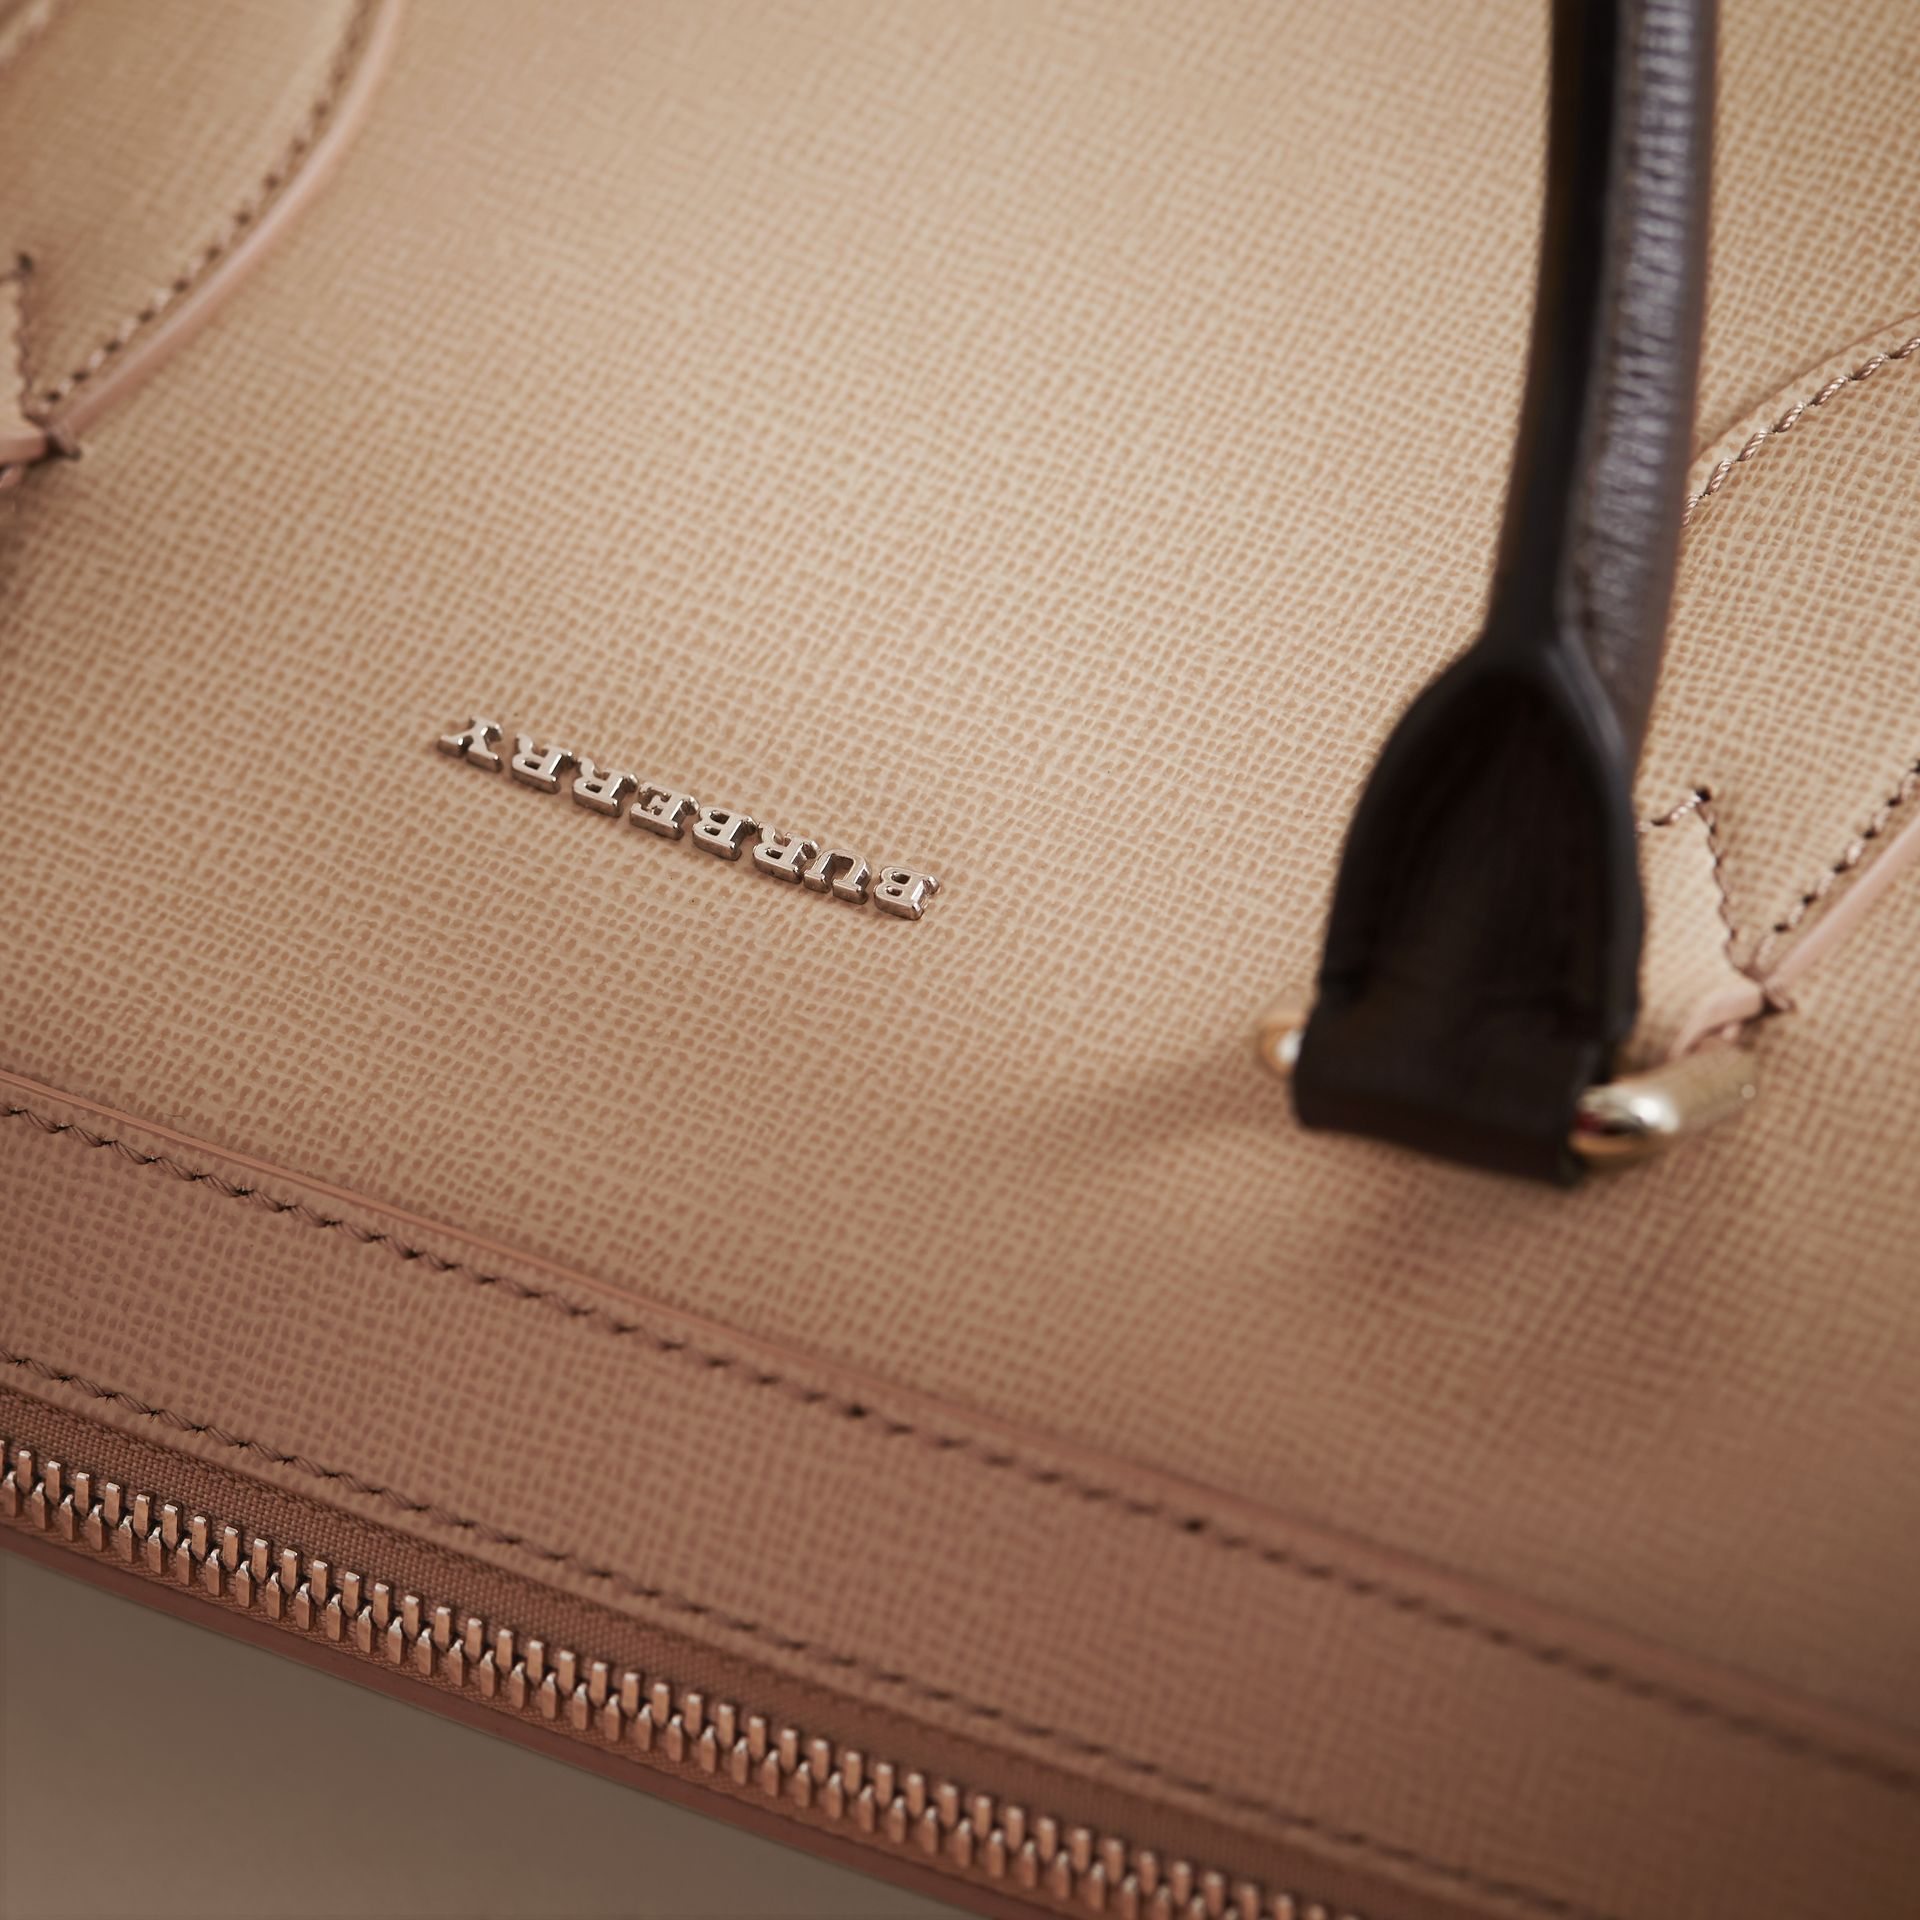 London Leather Briefcase in Honey/bitter Chocolate - Men | Burberry Hong Kong - gallery image 7